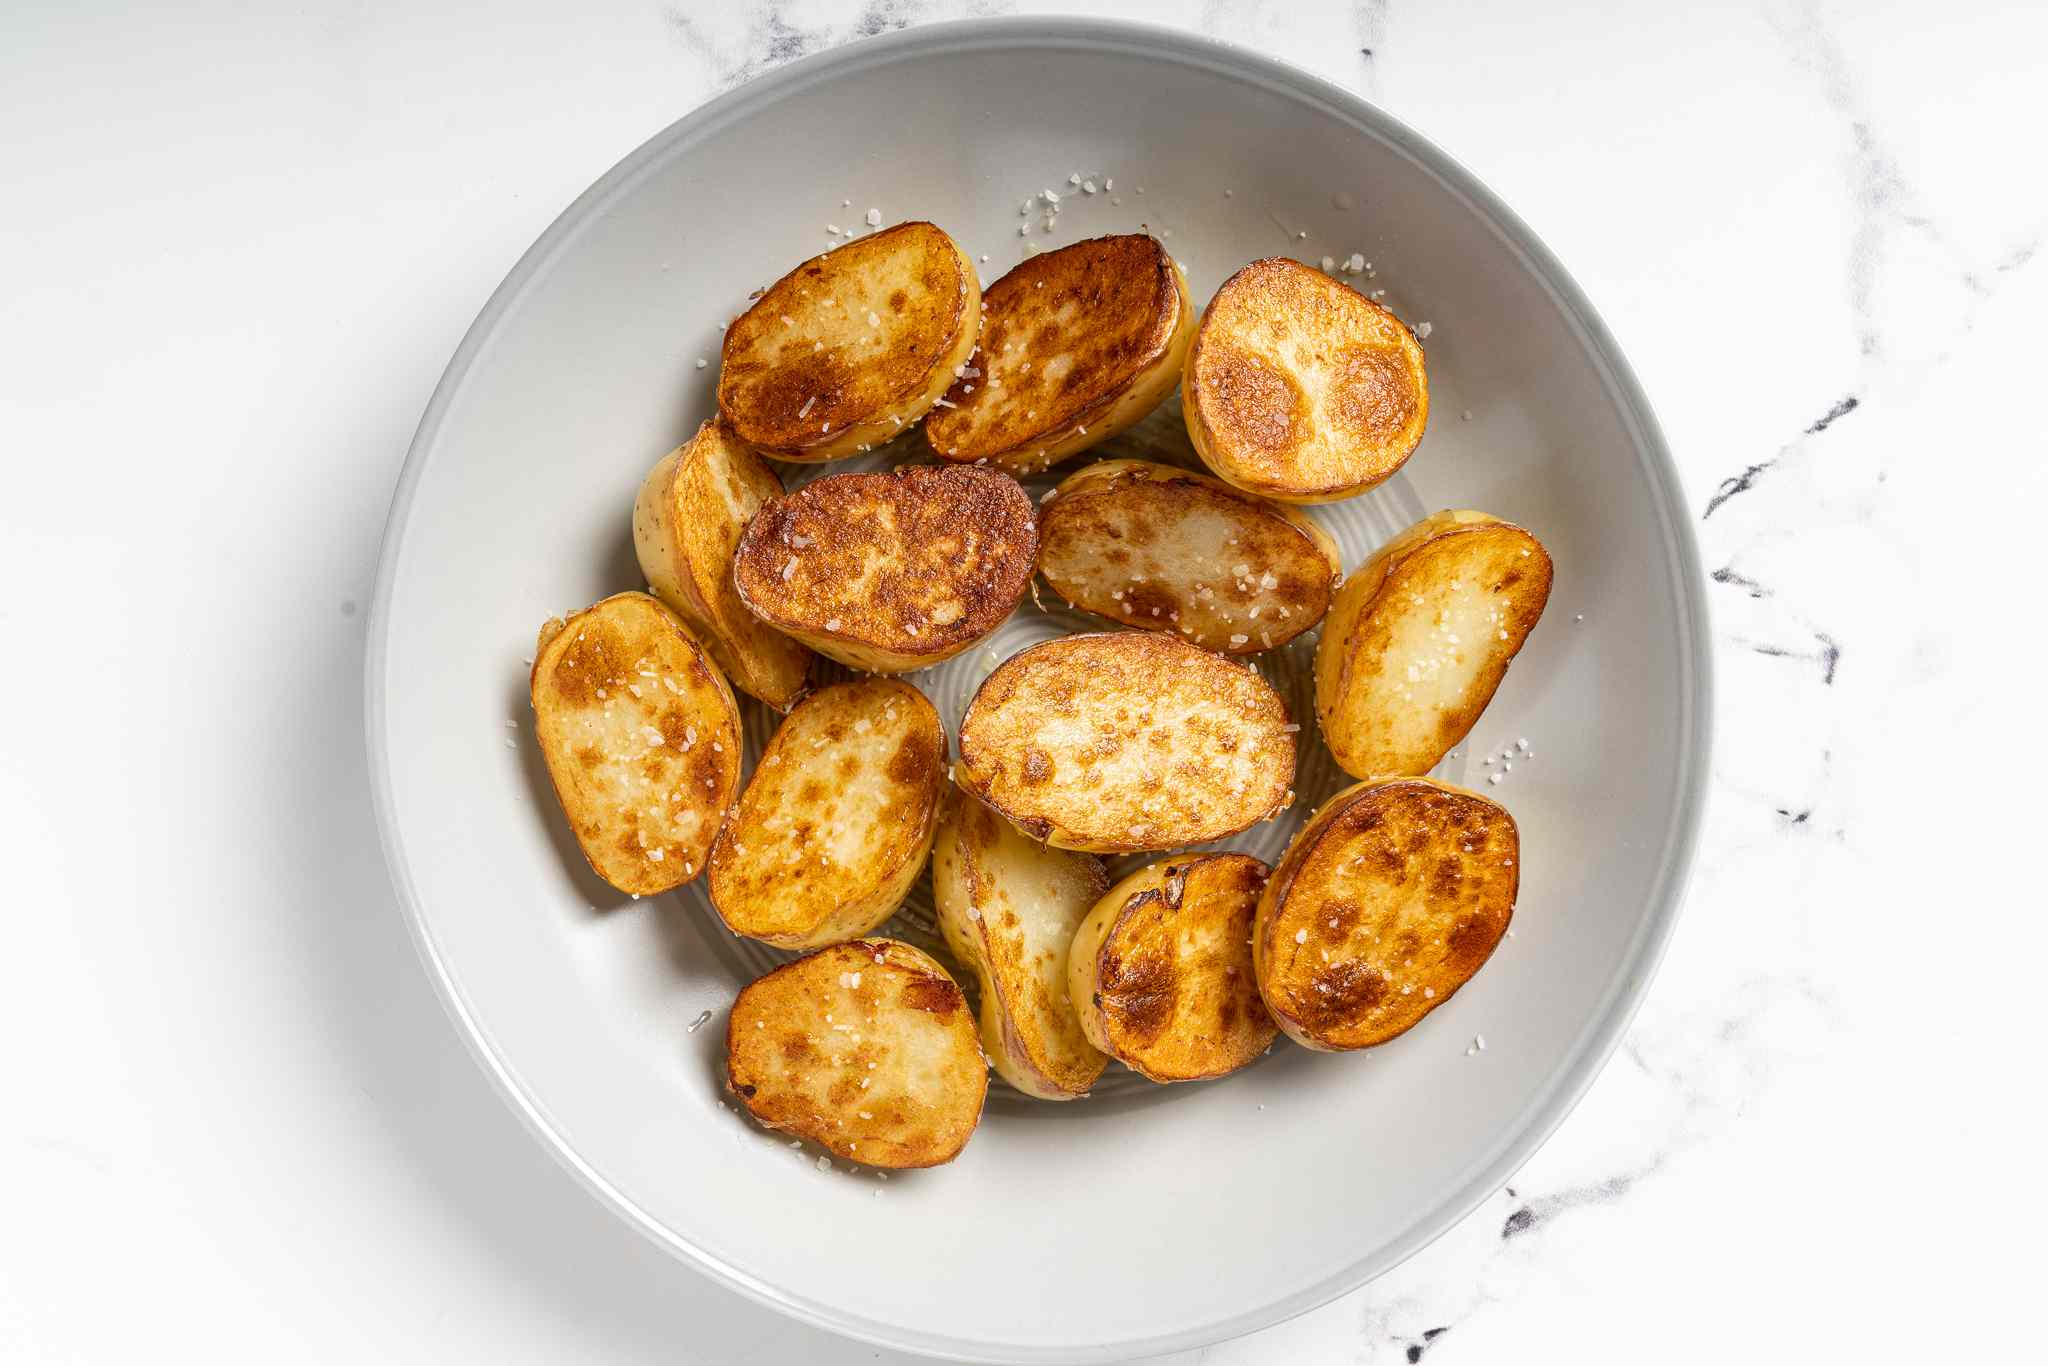 fried potatoes in a bowl